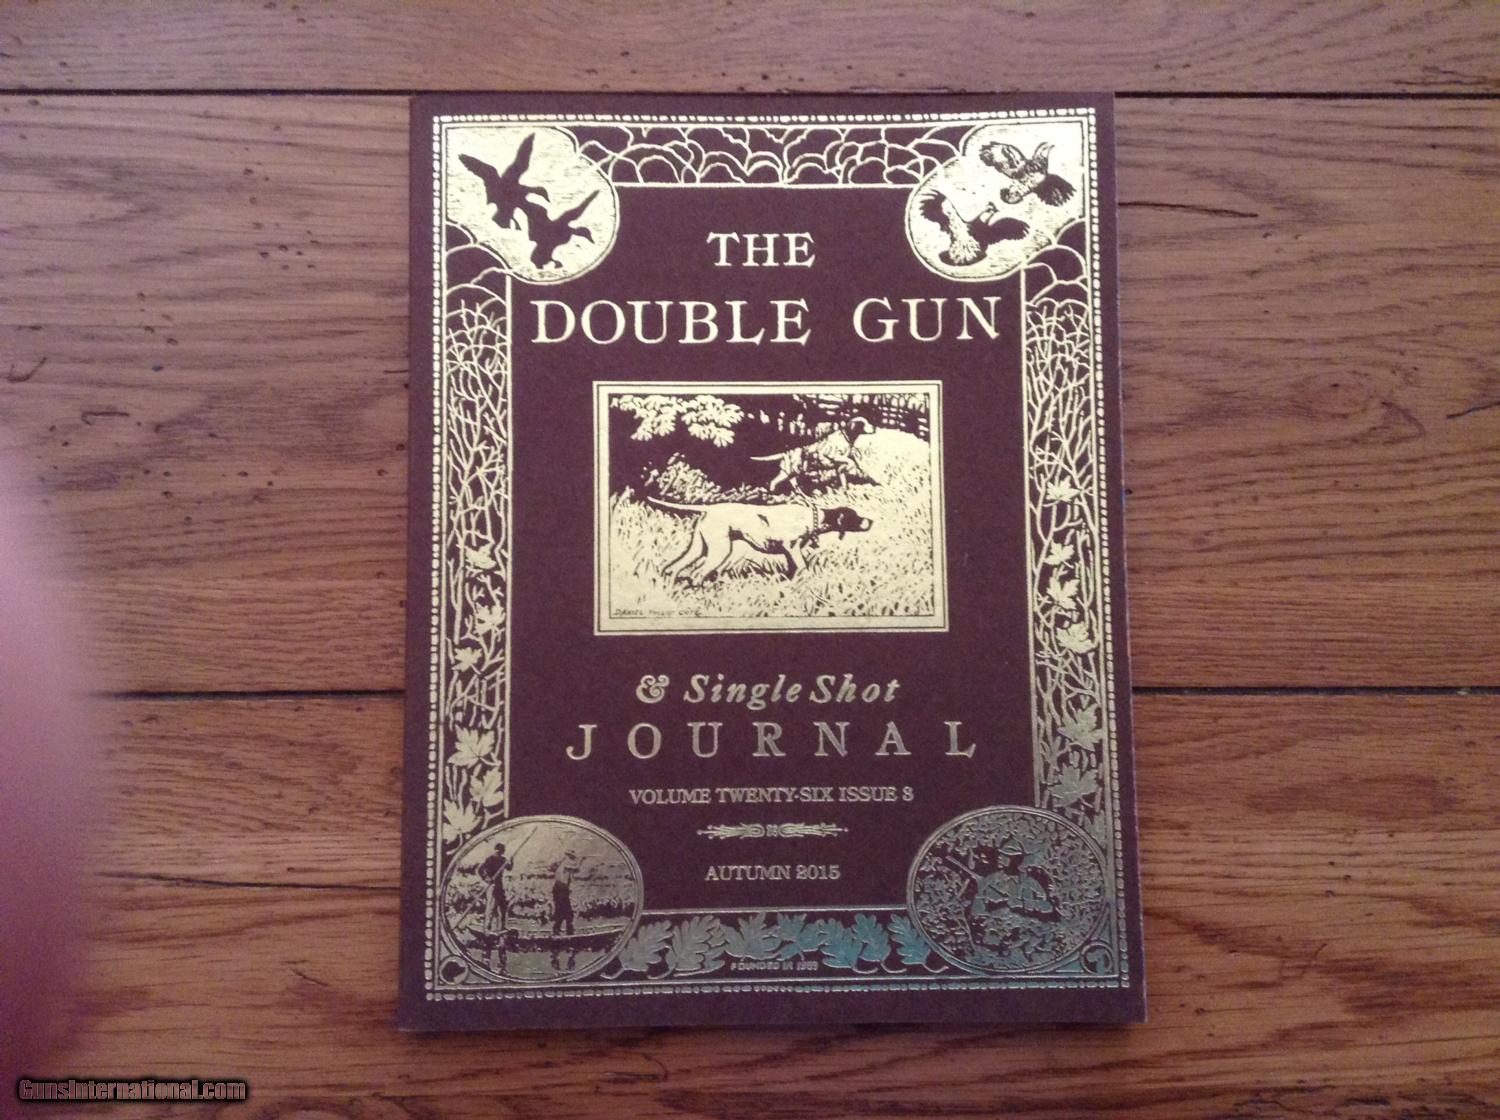 THE DOUBLE GUN JOURNAL (VOL Thirteen ISSUES 1-4 2002 VOL 13 COMPLETE In Case